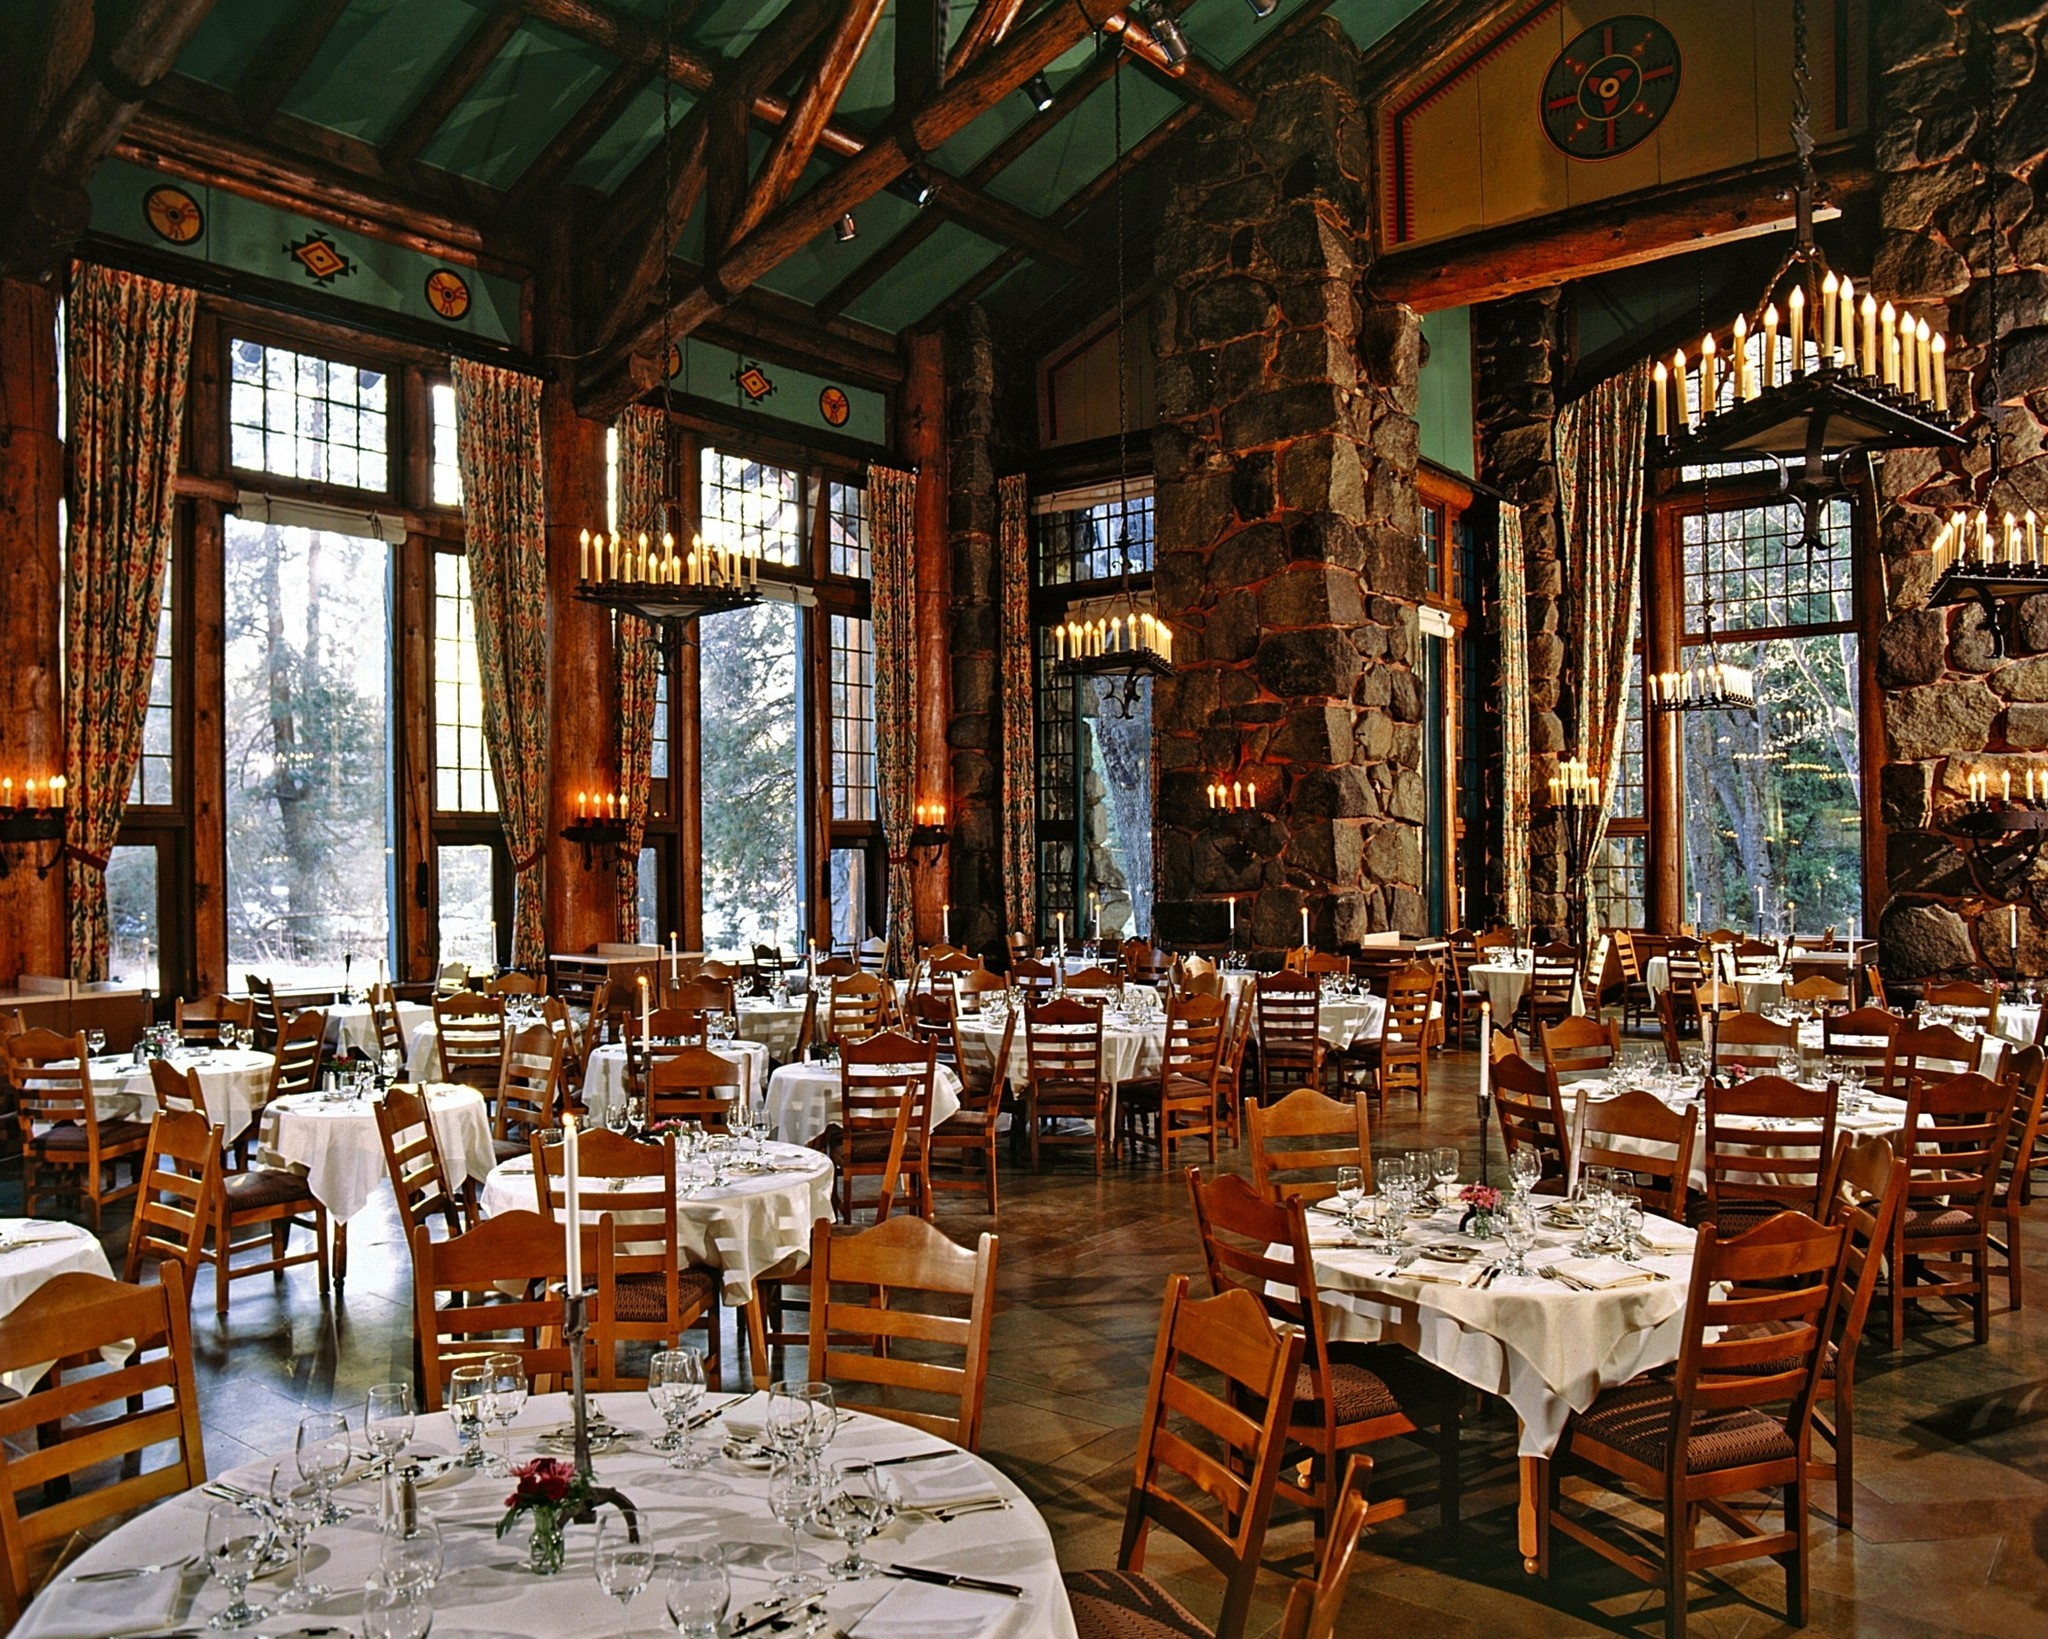 The Ahwahnee Hotel Dining Room These Vintners' Holidays In Yosemite May Help Boost Your Wine Iq